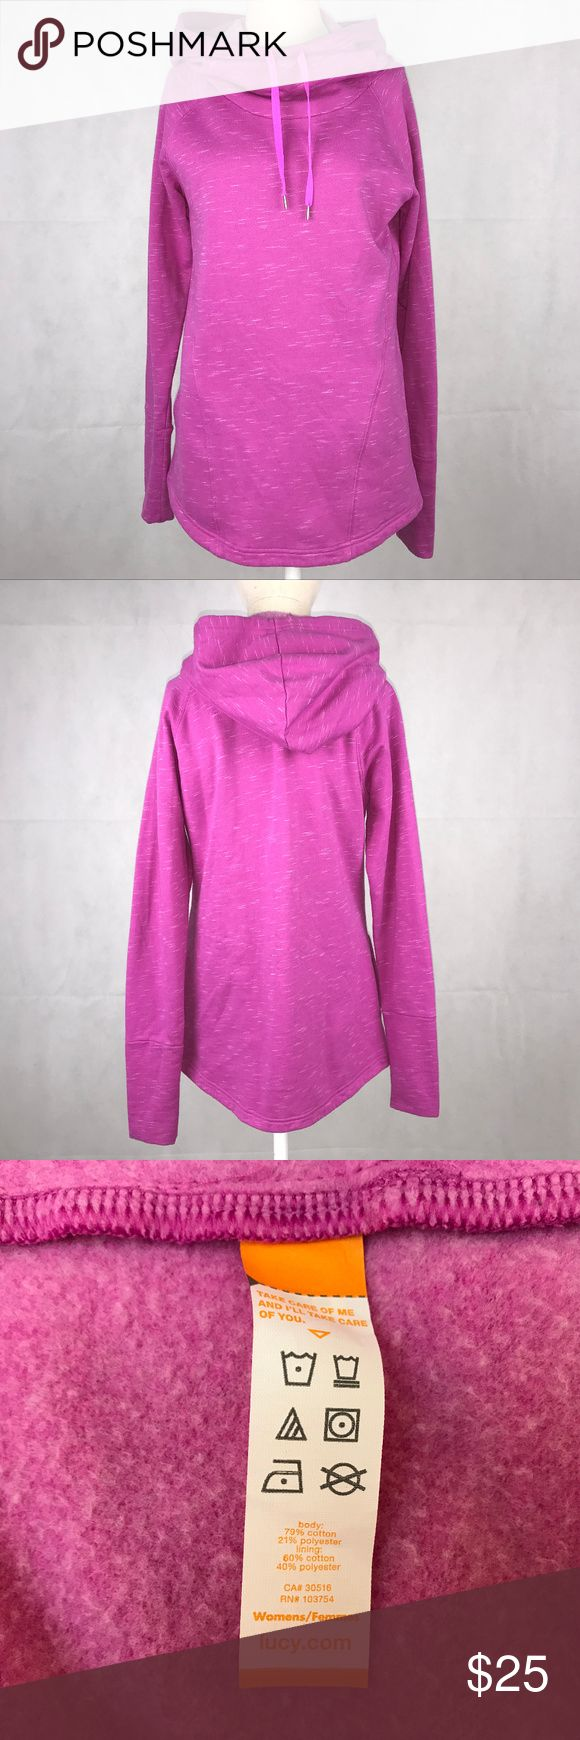 Lucy purple/pink cowl neck hooded sweatshirt Lucy women's size Medium purple/pink funnel cowl neck long sleeve pockets hooded sweatshirt. Made of 79% cotton and 21% polyester. Chest measurement: 17.5 inches (underarm to underarm) Sleeve measurement: 28 inches (neck to hem) Length measurement: 25.5 inches Lucy Tops Sweatshirts & Hoodies